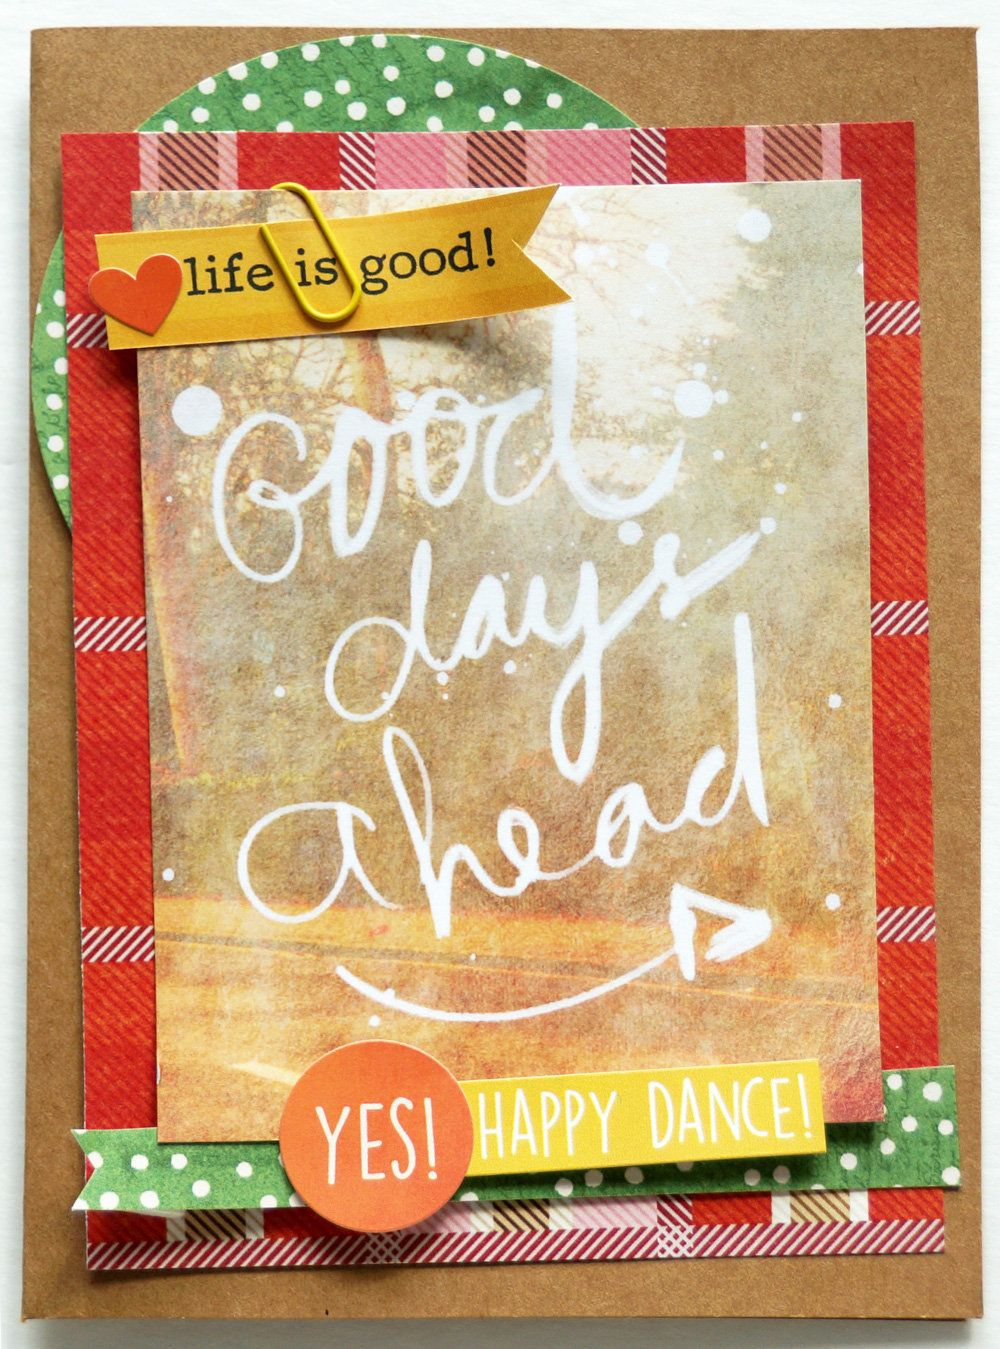 Good Days card, by Emily Pitts using the Lunch Break collection from www.cocoadaisy.com #cocoadaisy #scrapbooking #kitclub #cards #DITL #stickers #diecuts